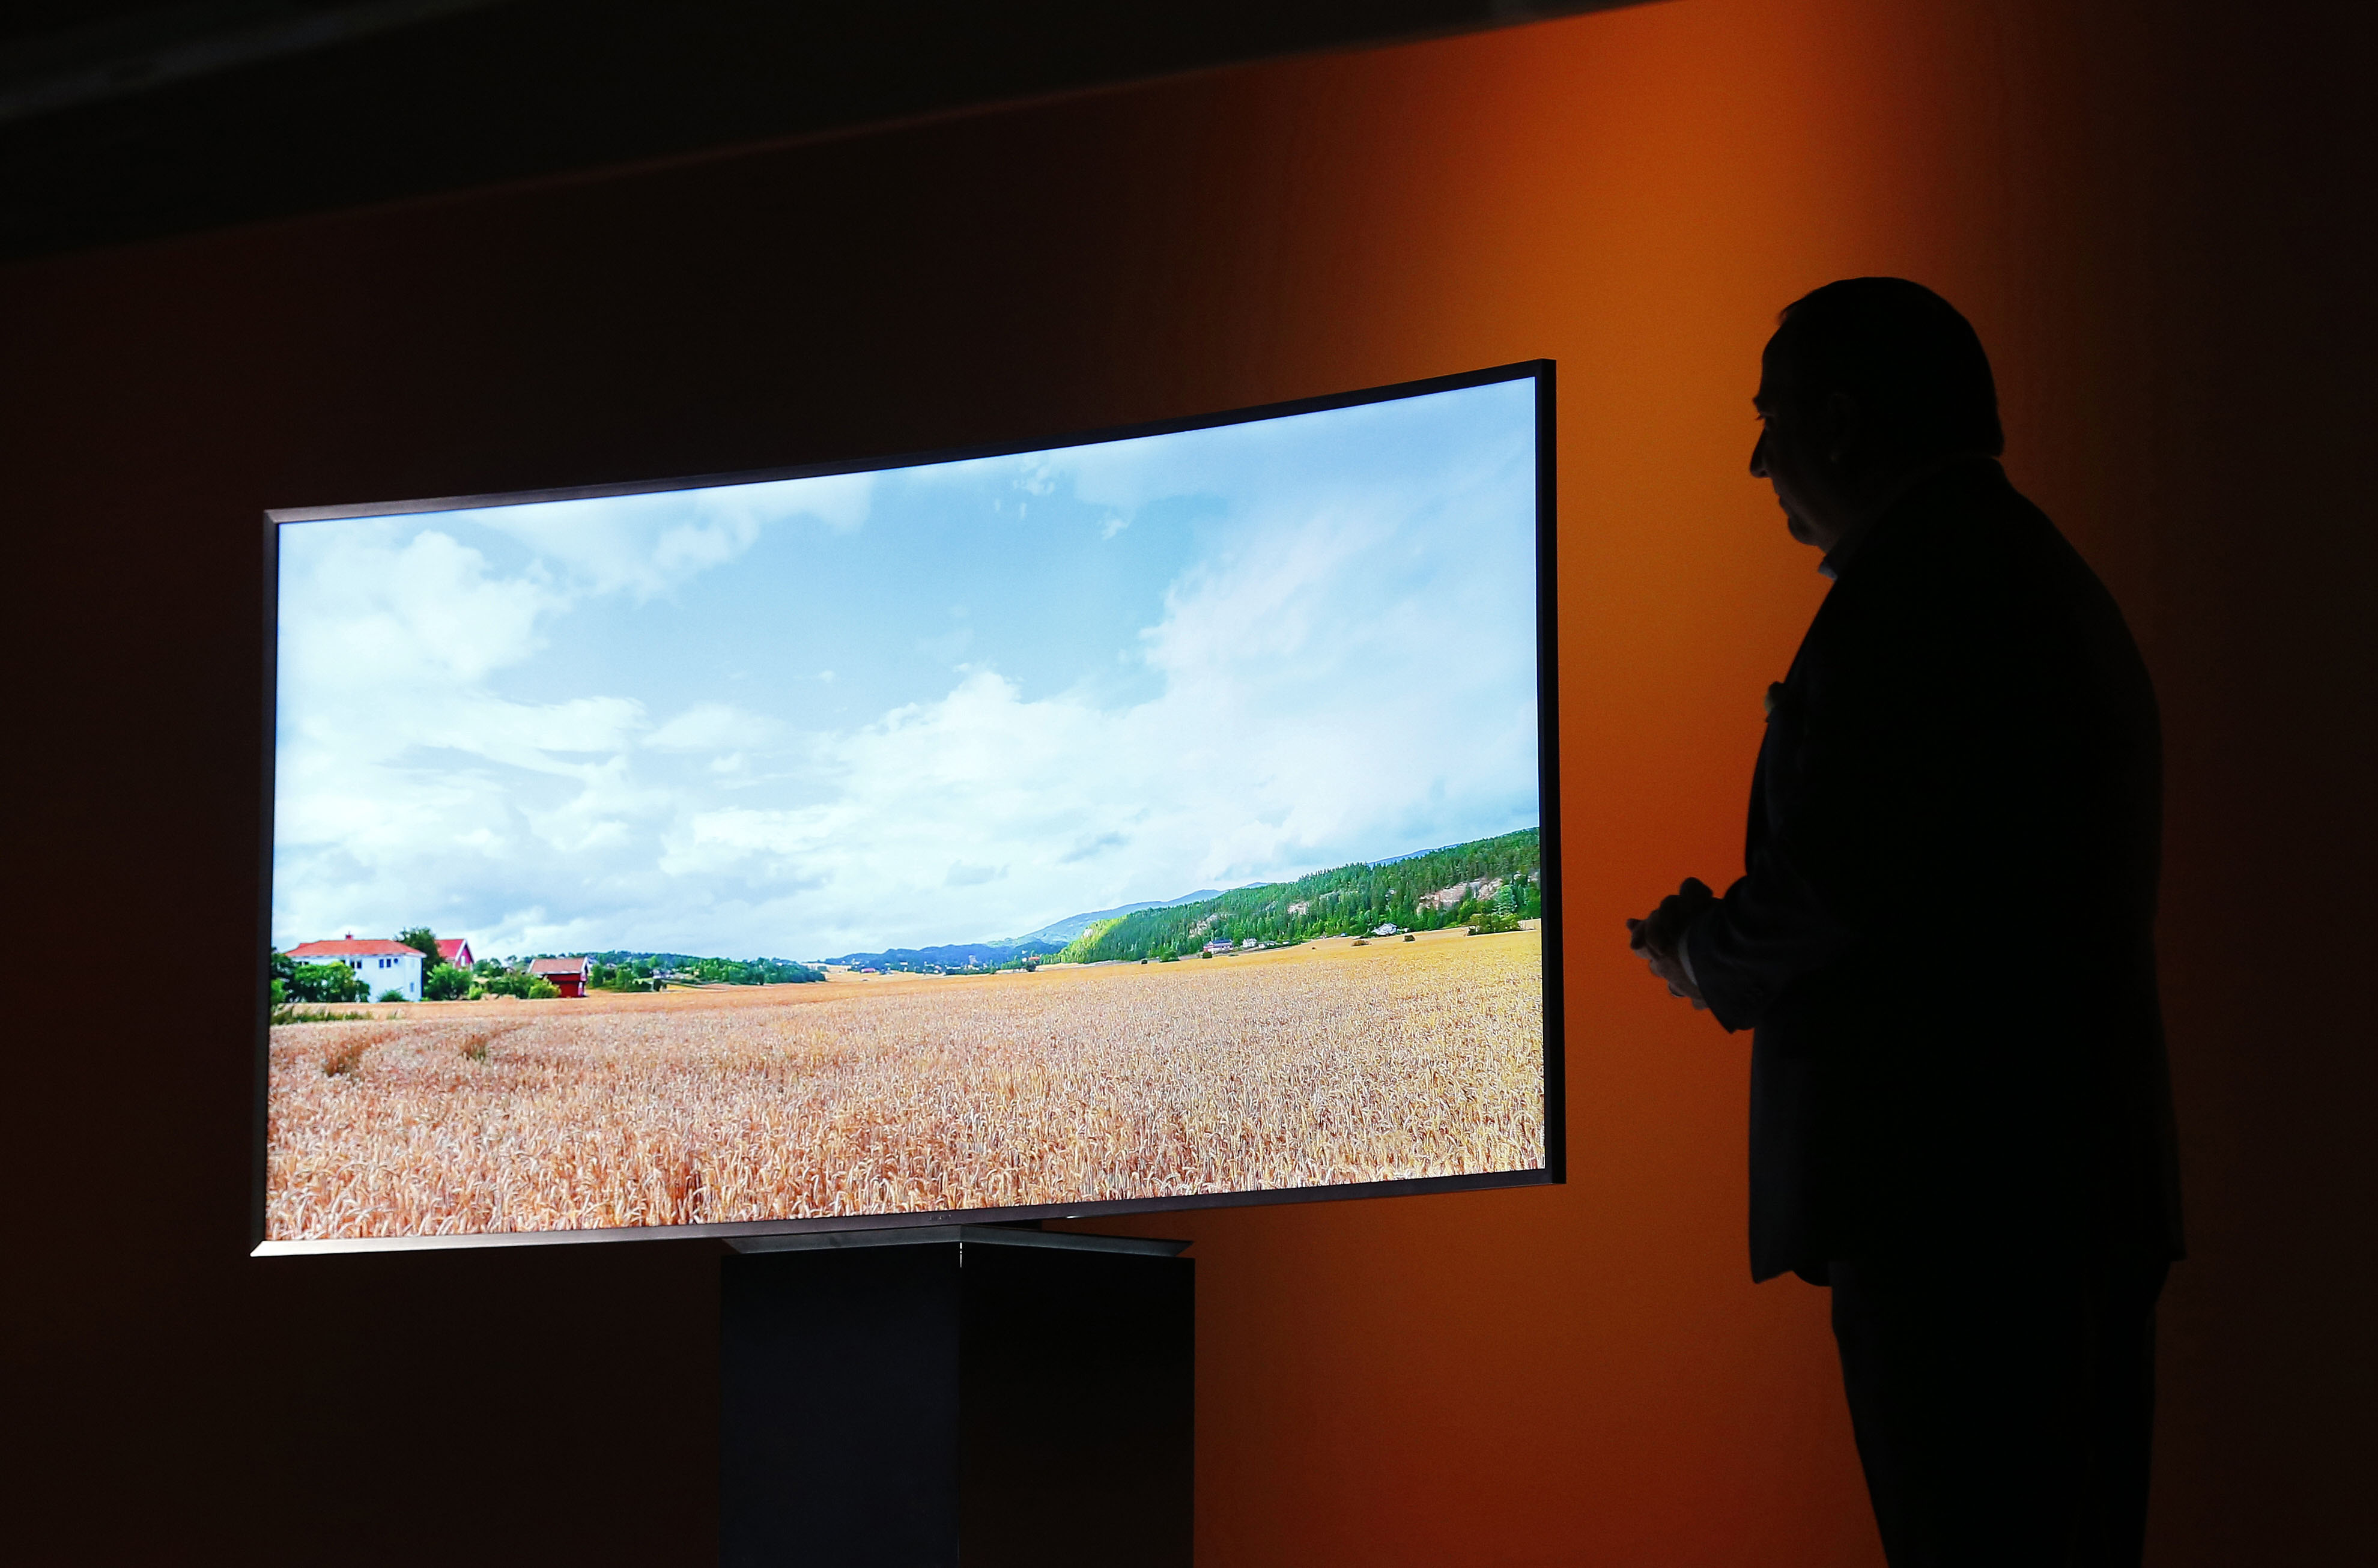 Shhhhh - your TV could be listening: Samsung issues warning over